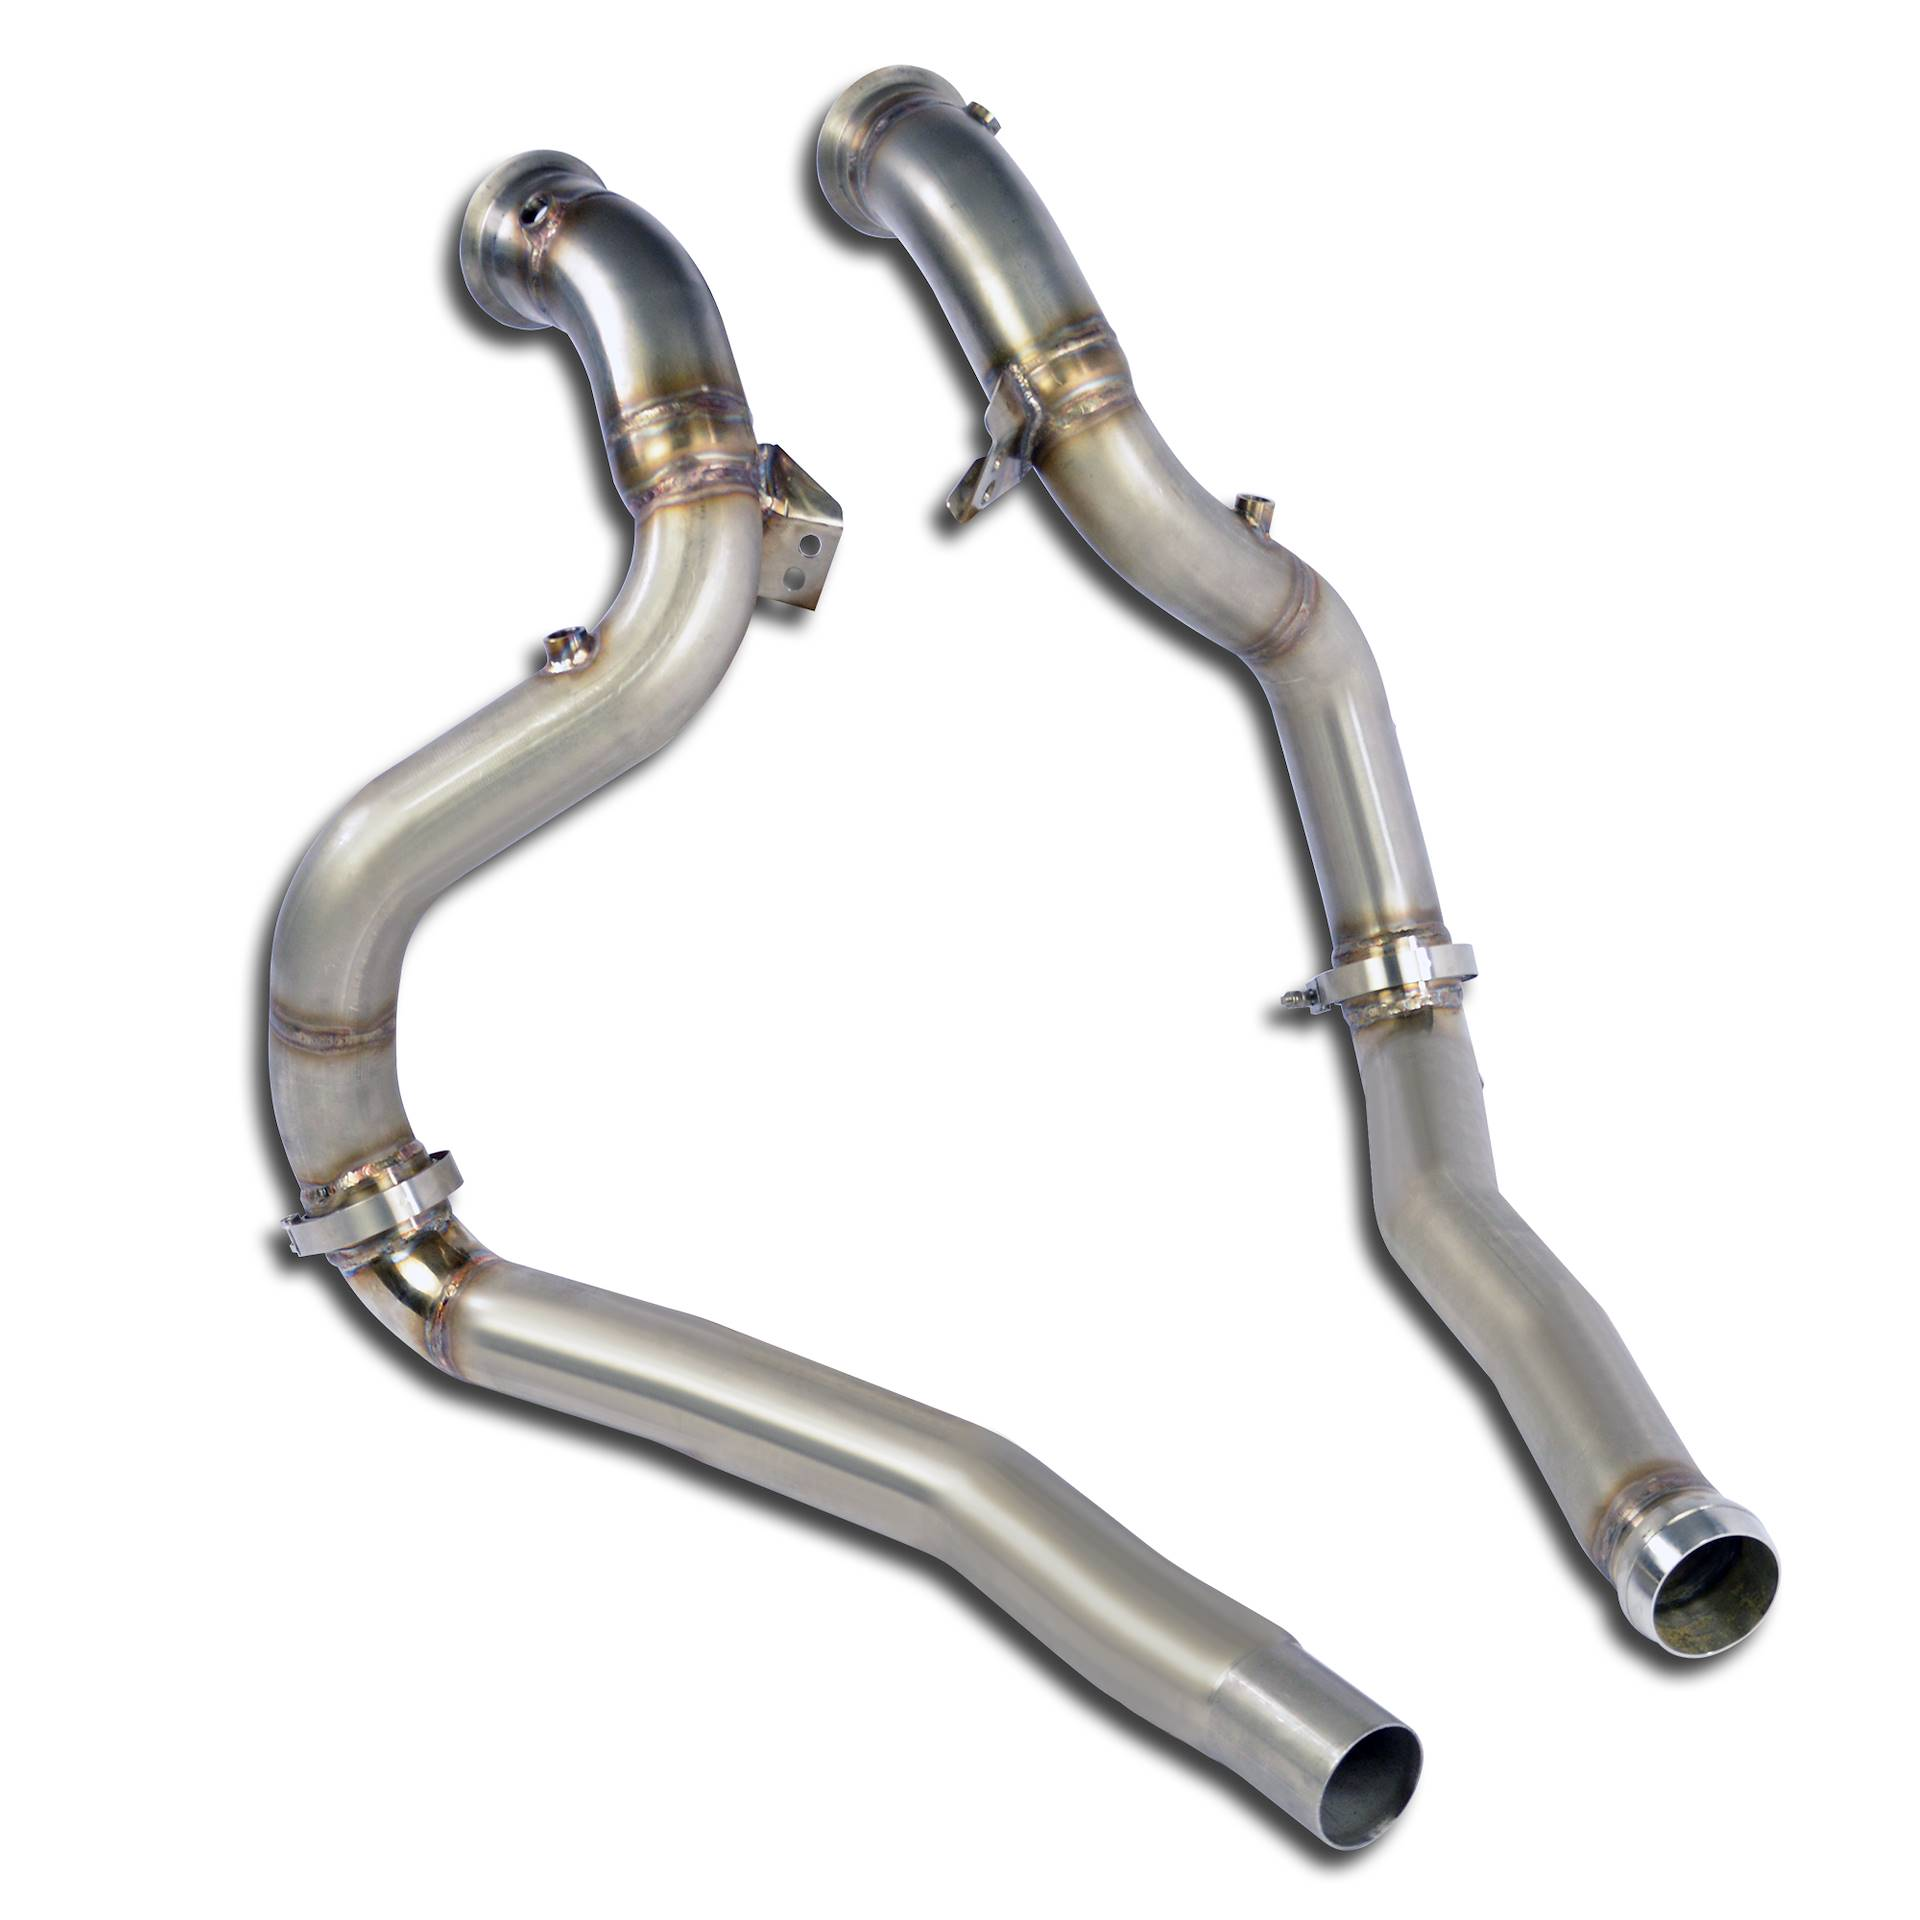 """Downpipe kit Right + Left (Replaces catalytic converter) for MERCEDES C190 AMG GT """"Black Series"""" GPF"""